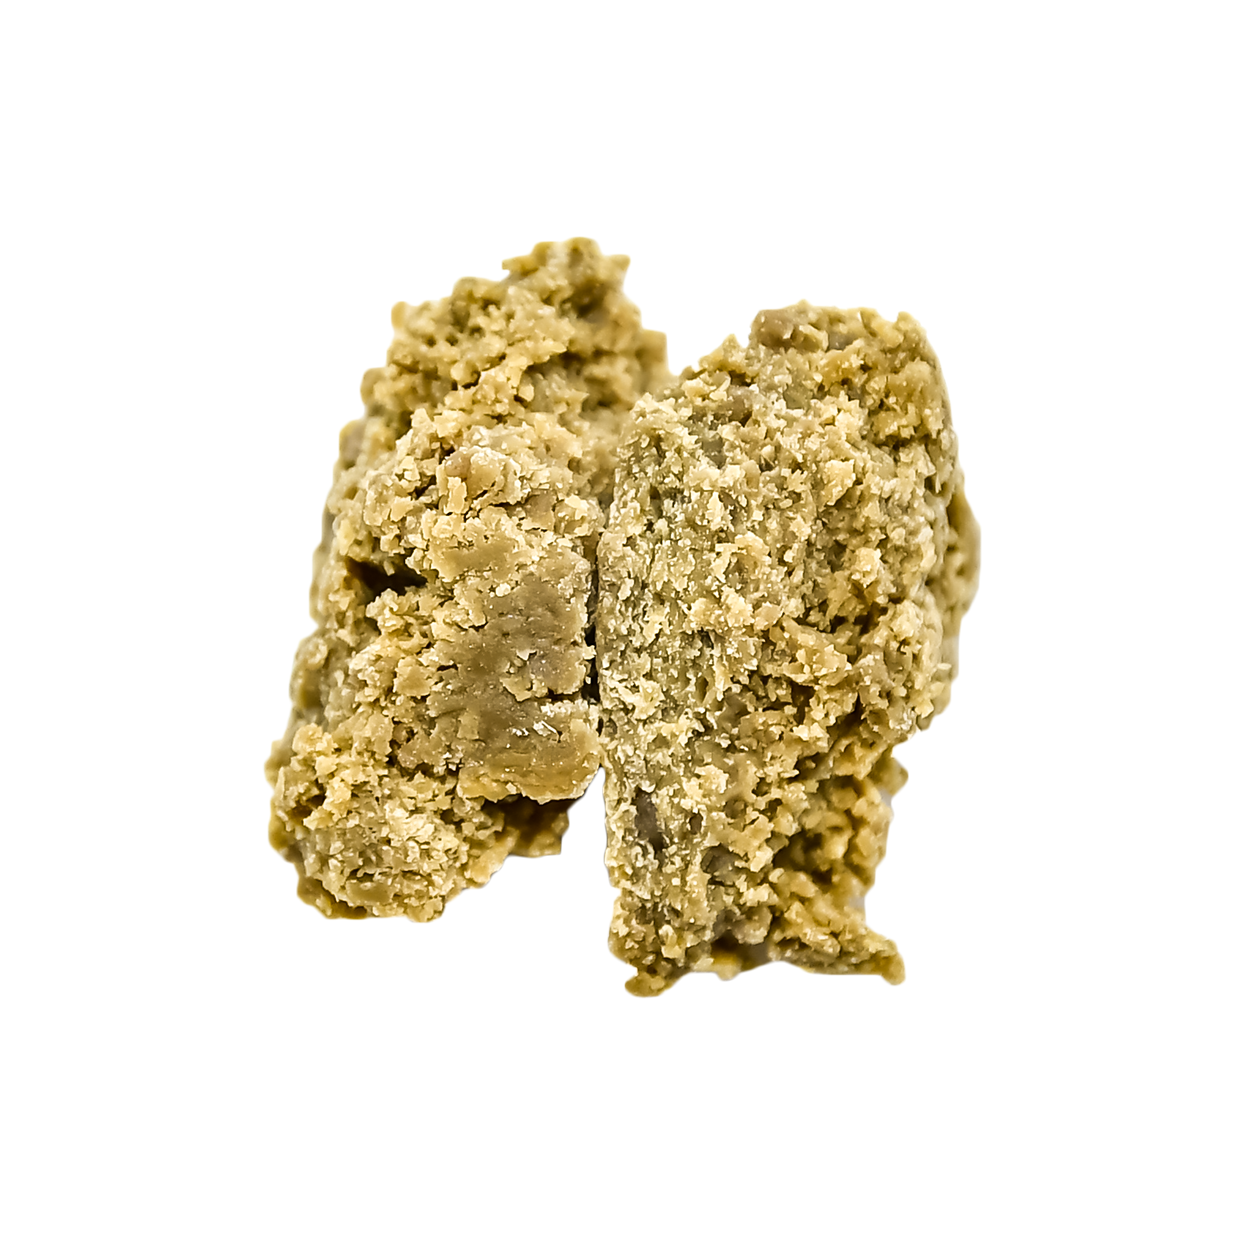 Canna Farms Hash Rosin Concentrate